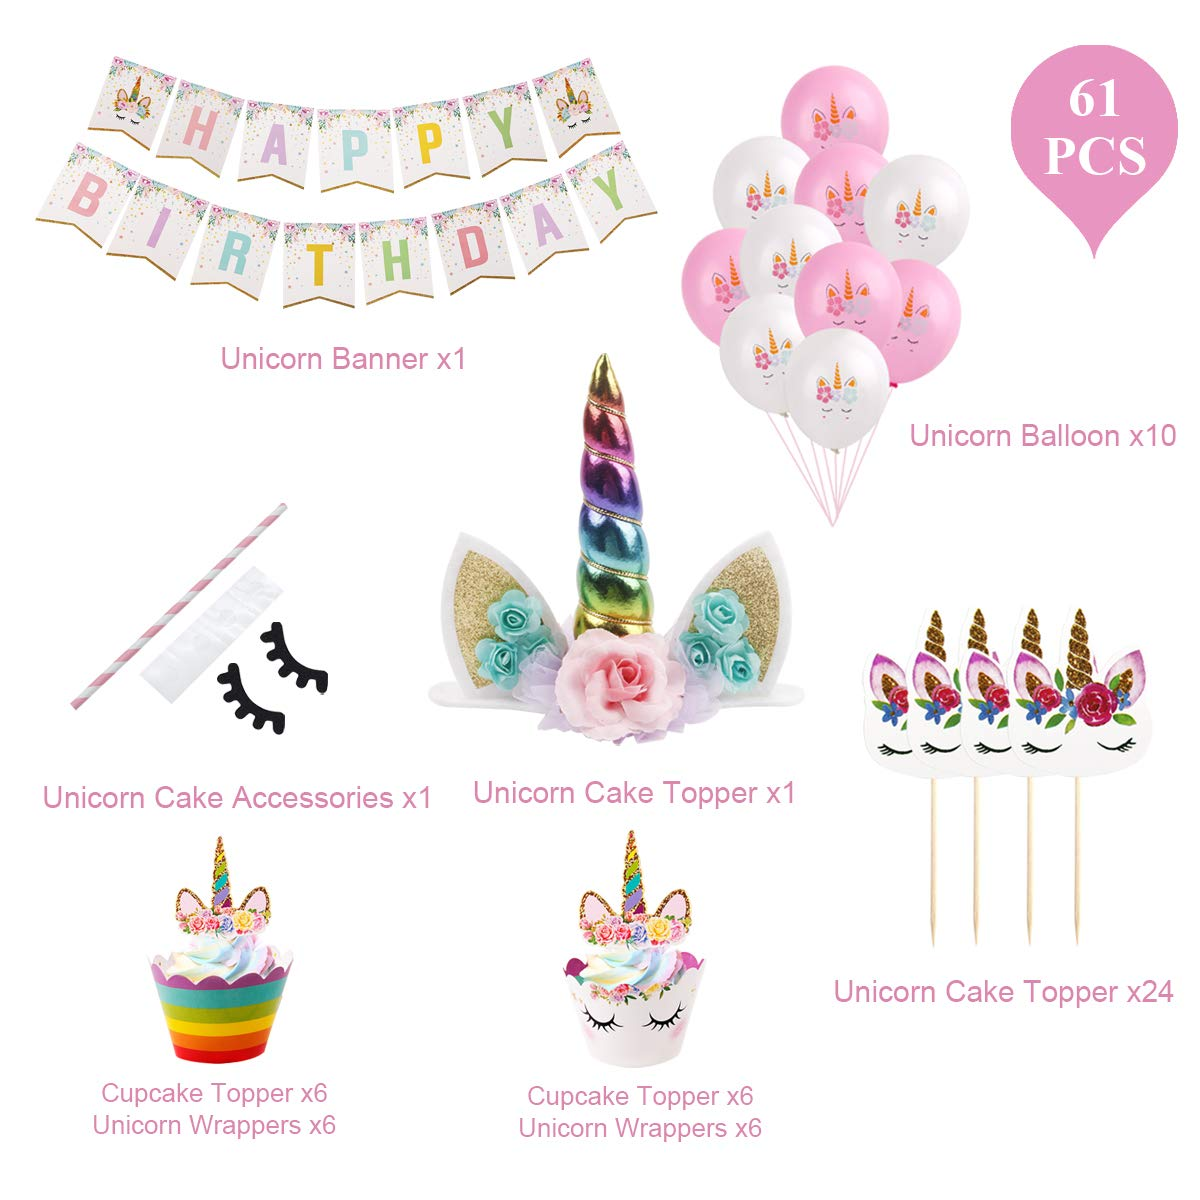 61Pcs Unicorn Cake Topper - Unicorn Horn Party Cake Decoration, Unicorn Cupcake Toppers, Unicorn Cupcake Wrappers, Banner, Unicorn Balloons for Birthday Party, Baby Shower (Unicorn Cake Topper) by QIFU (Image #2)